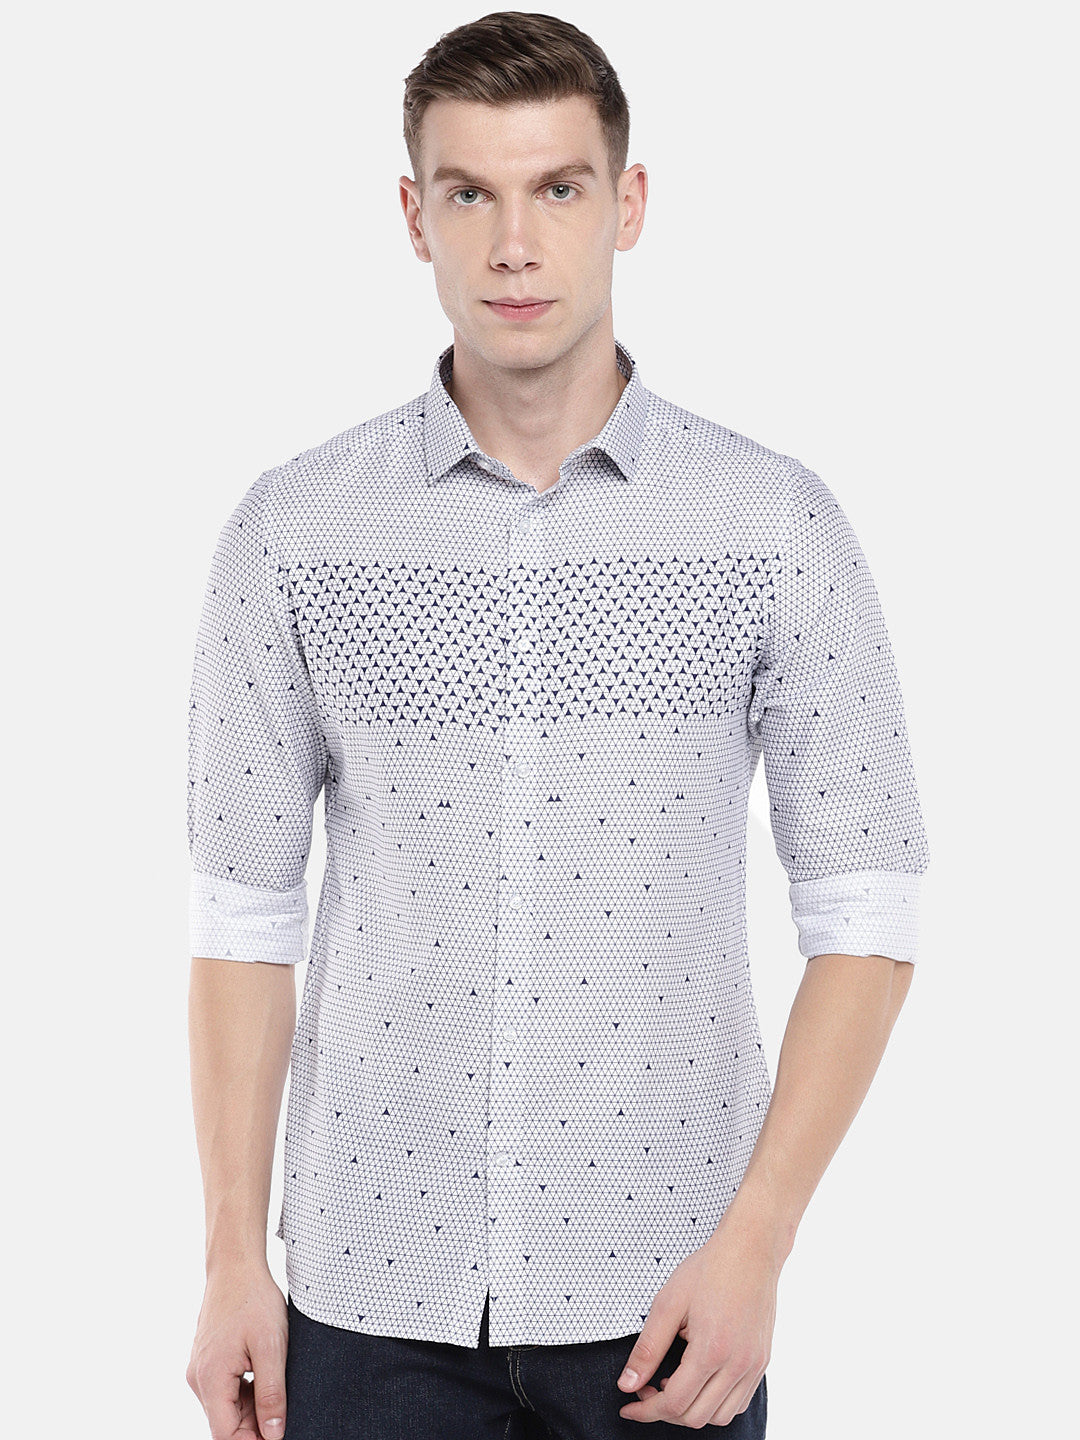 White & Blue Regular Fit Printed Casual Shirt-1